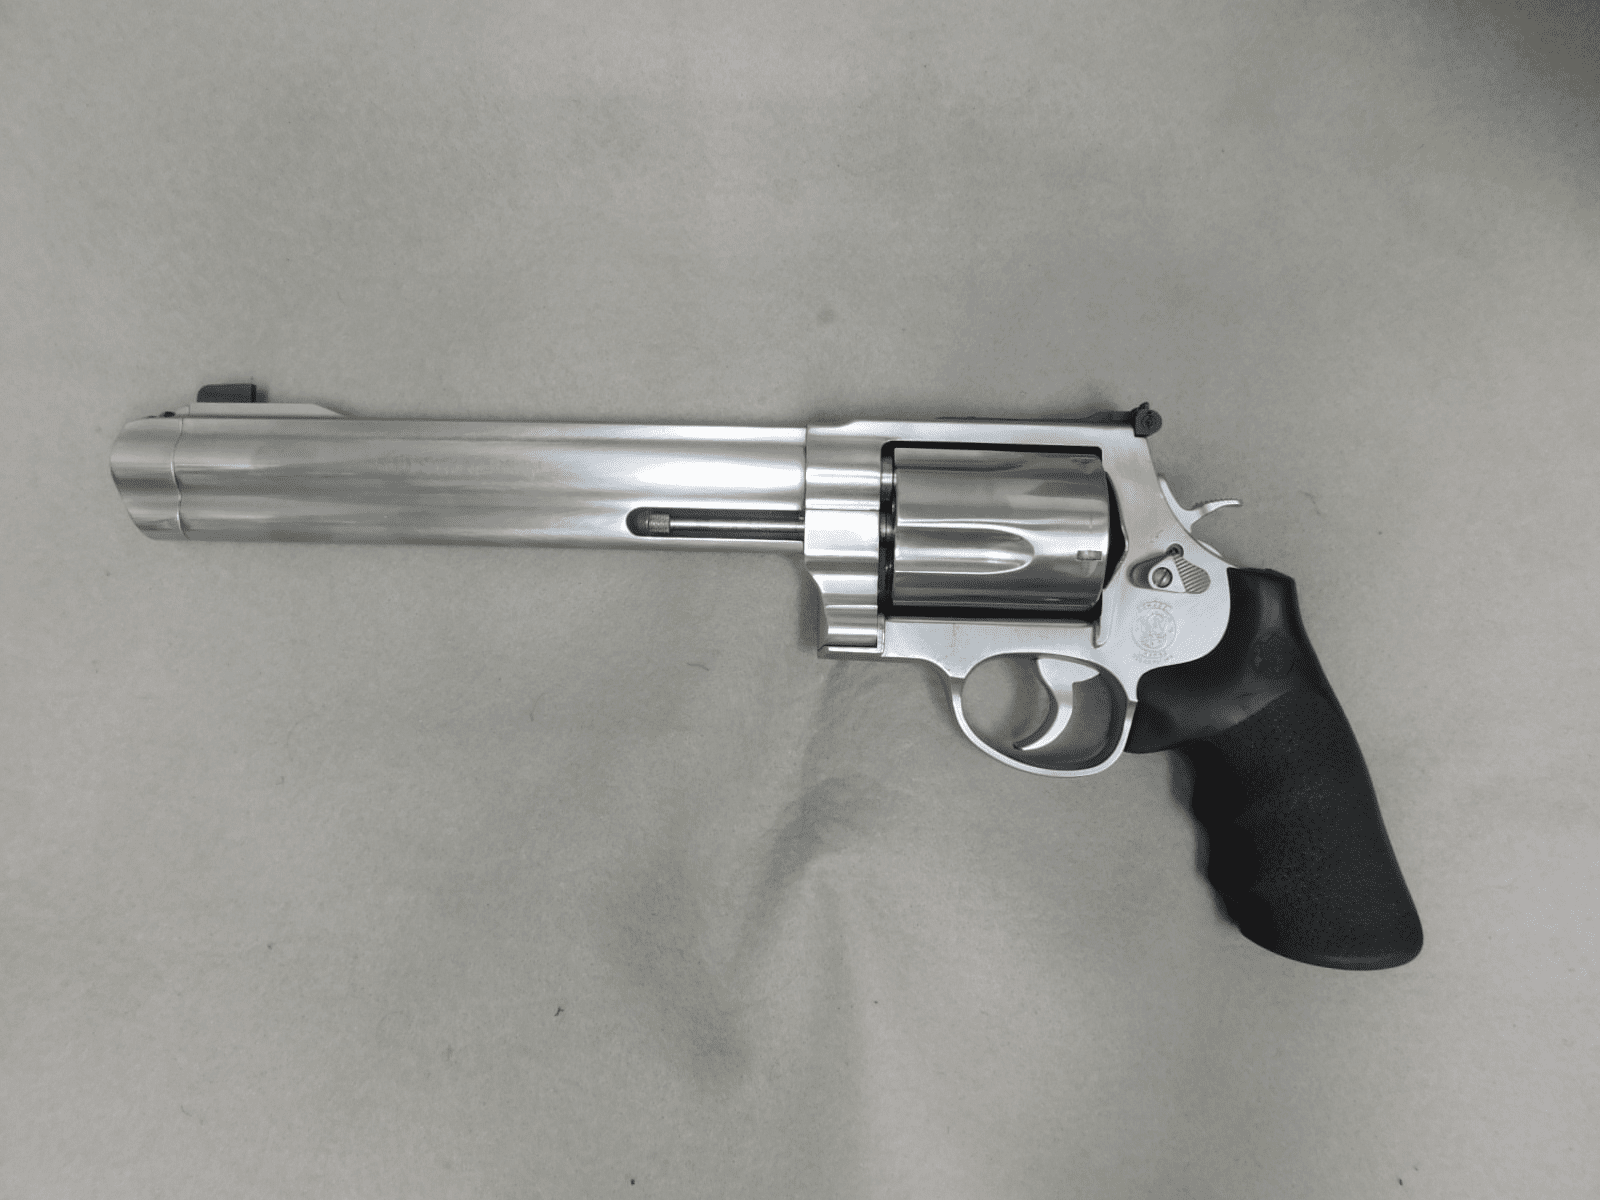 Smith & Wesson 500 (.500)